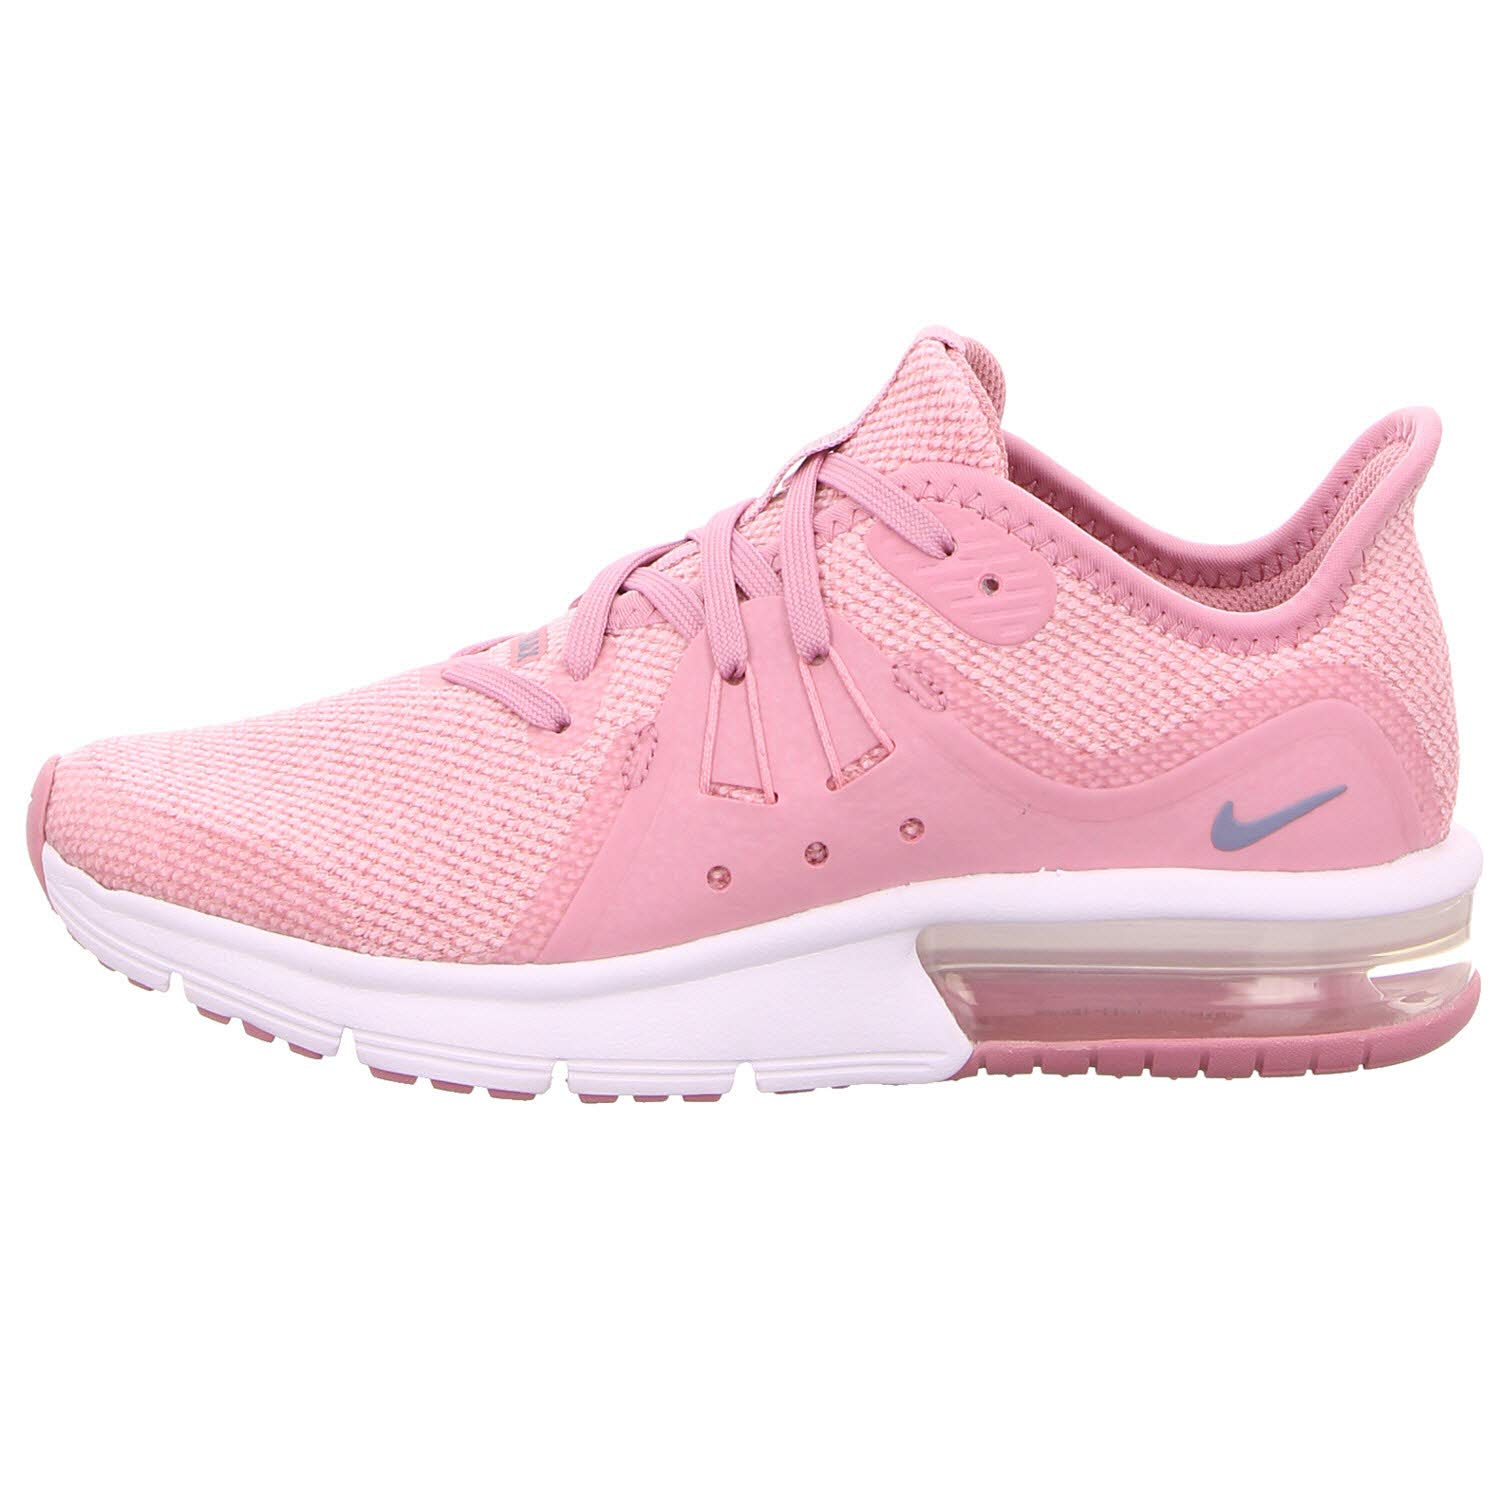 big sale ff423 573d3 Nike Air Max Sequent 3 (GS), Chaussures de Running Compétiti